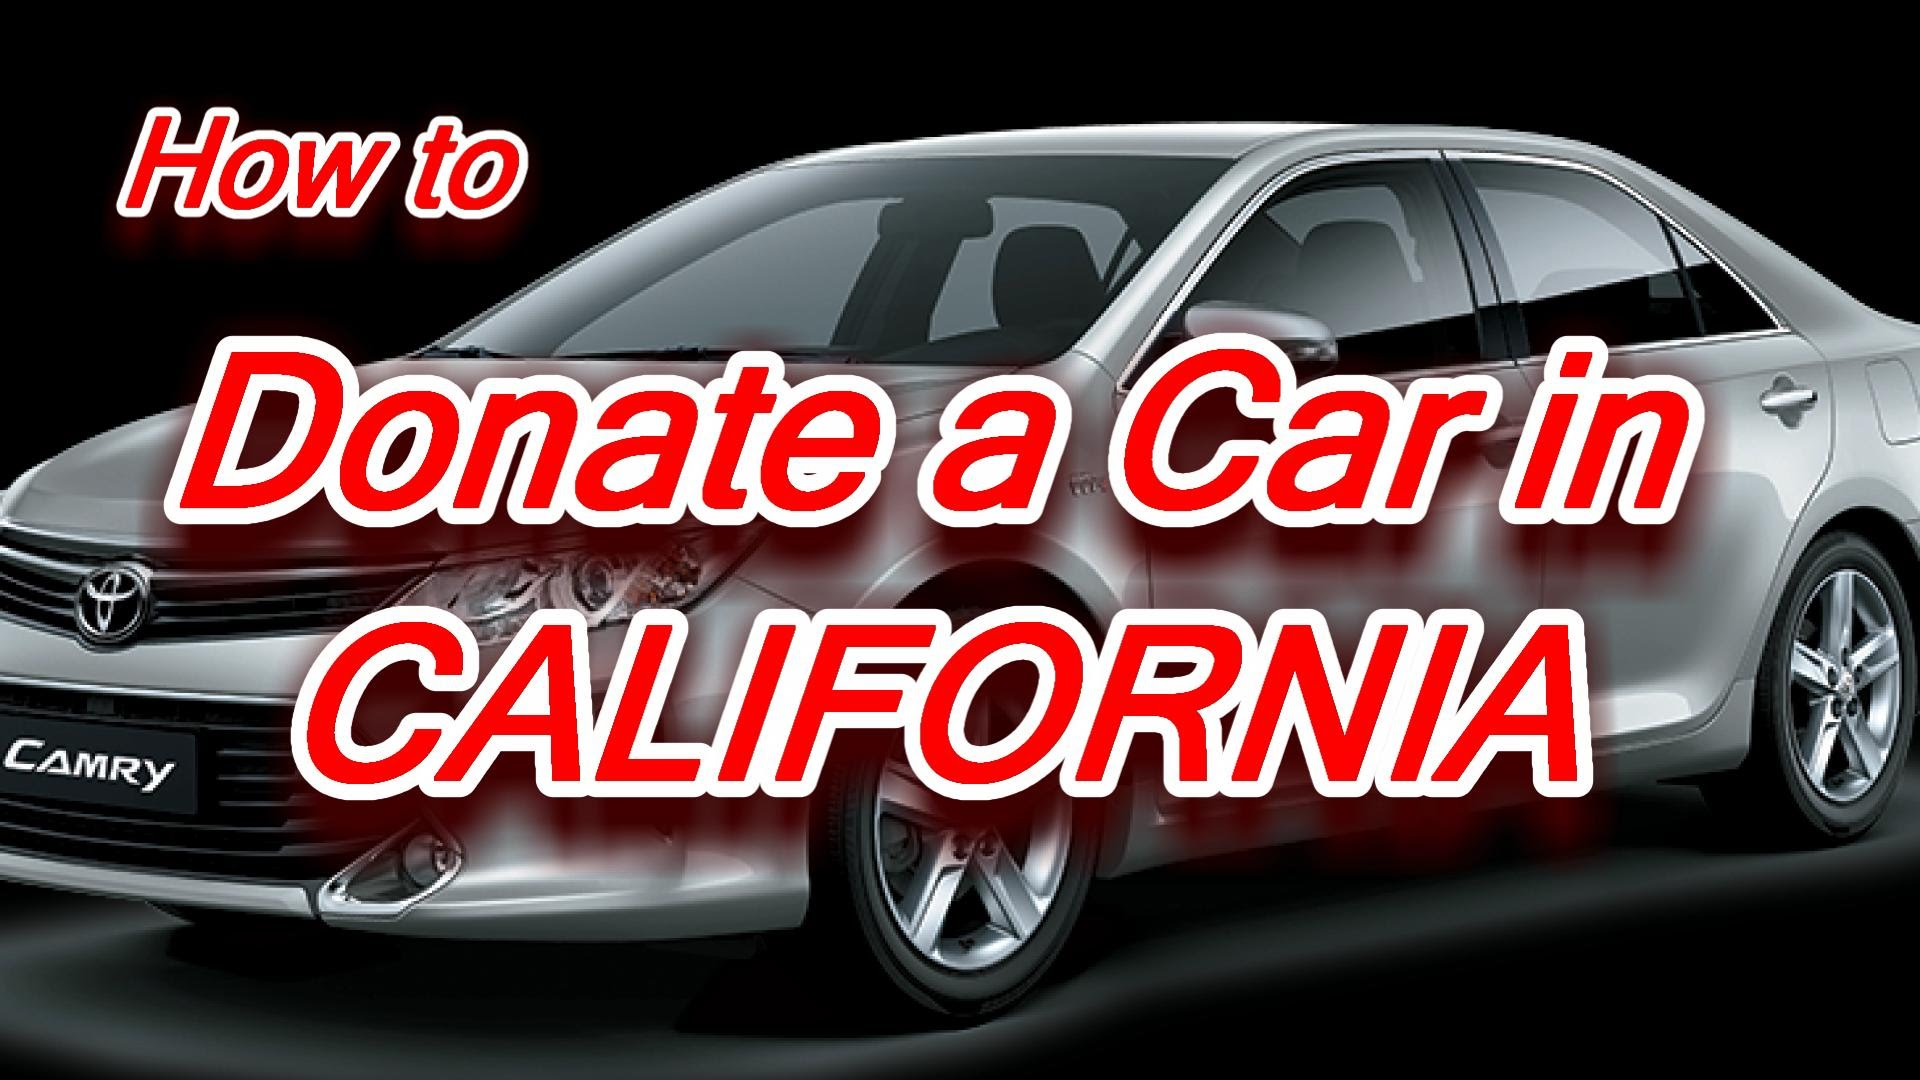 Donate to Car in California 2